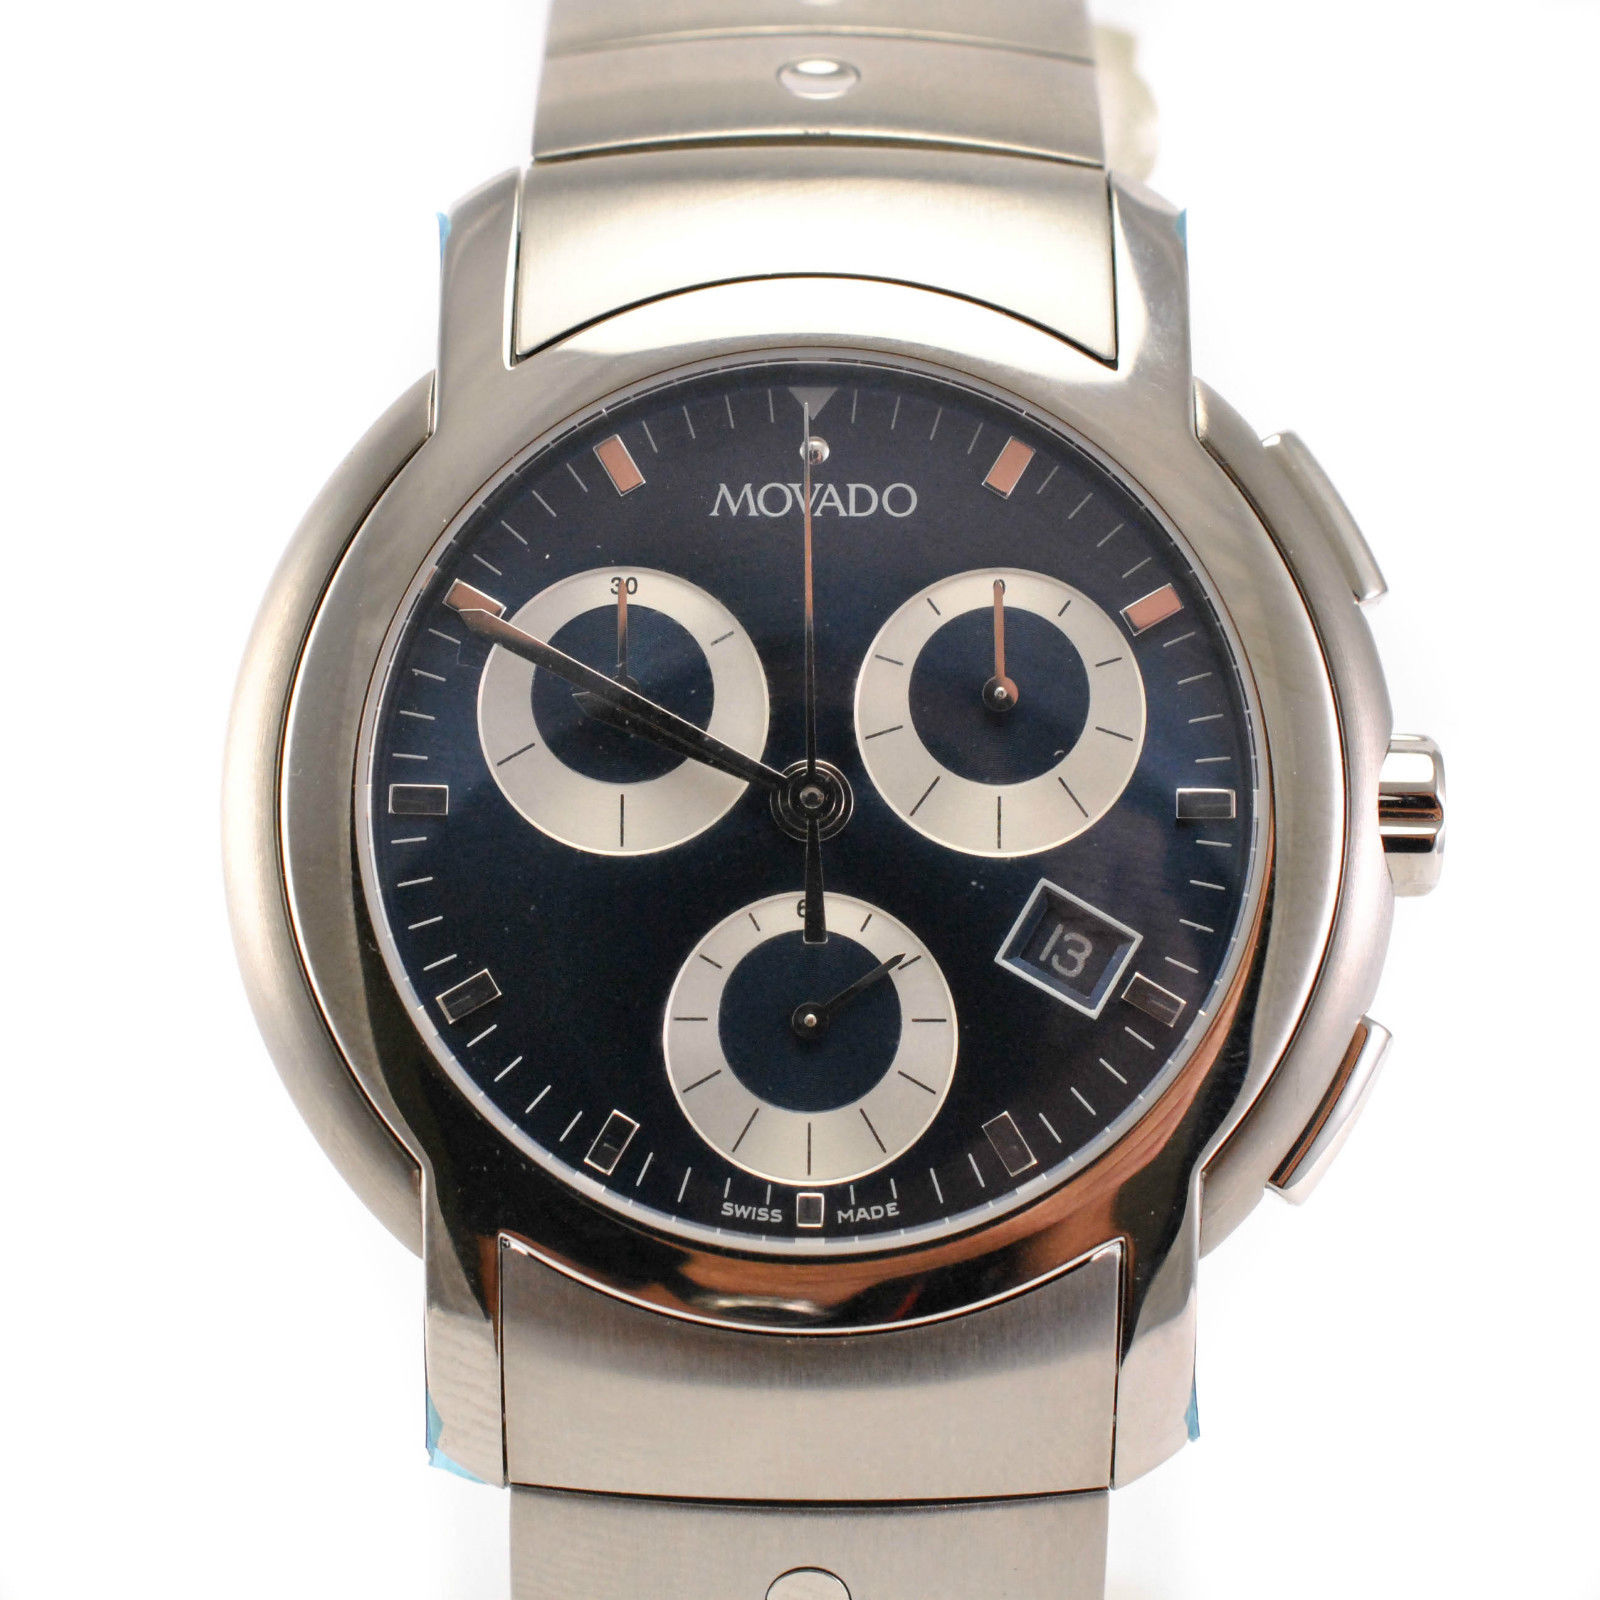 """Image of """"Movado 84 C5 189 Stainless steel Witch Chronogaph Men's Watch"""""""